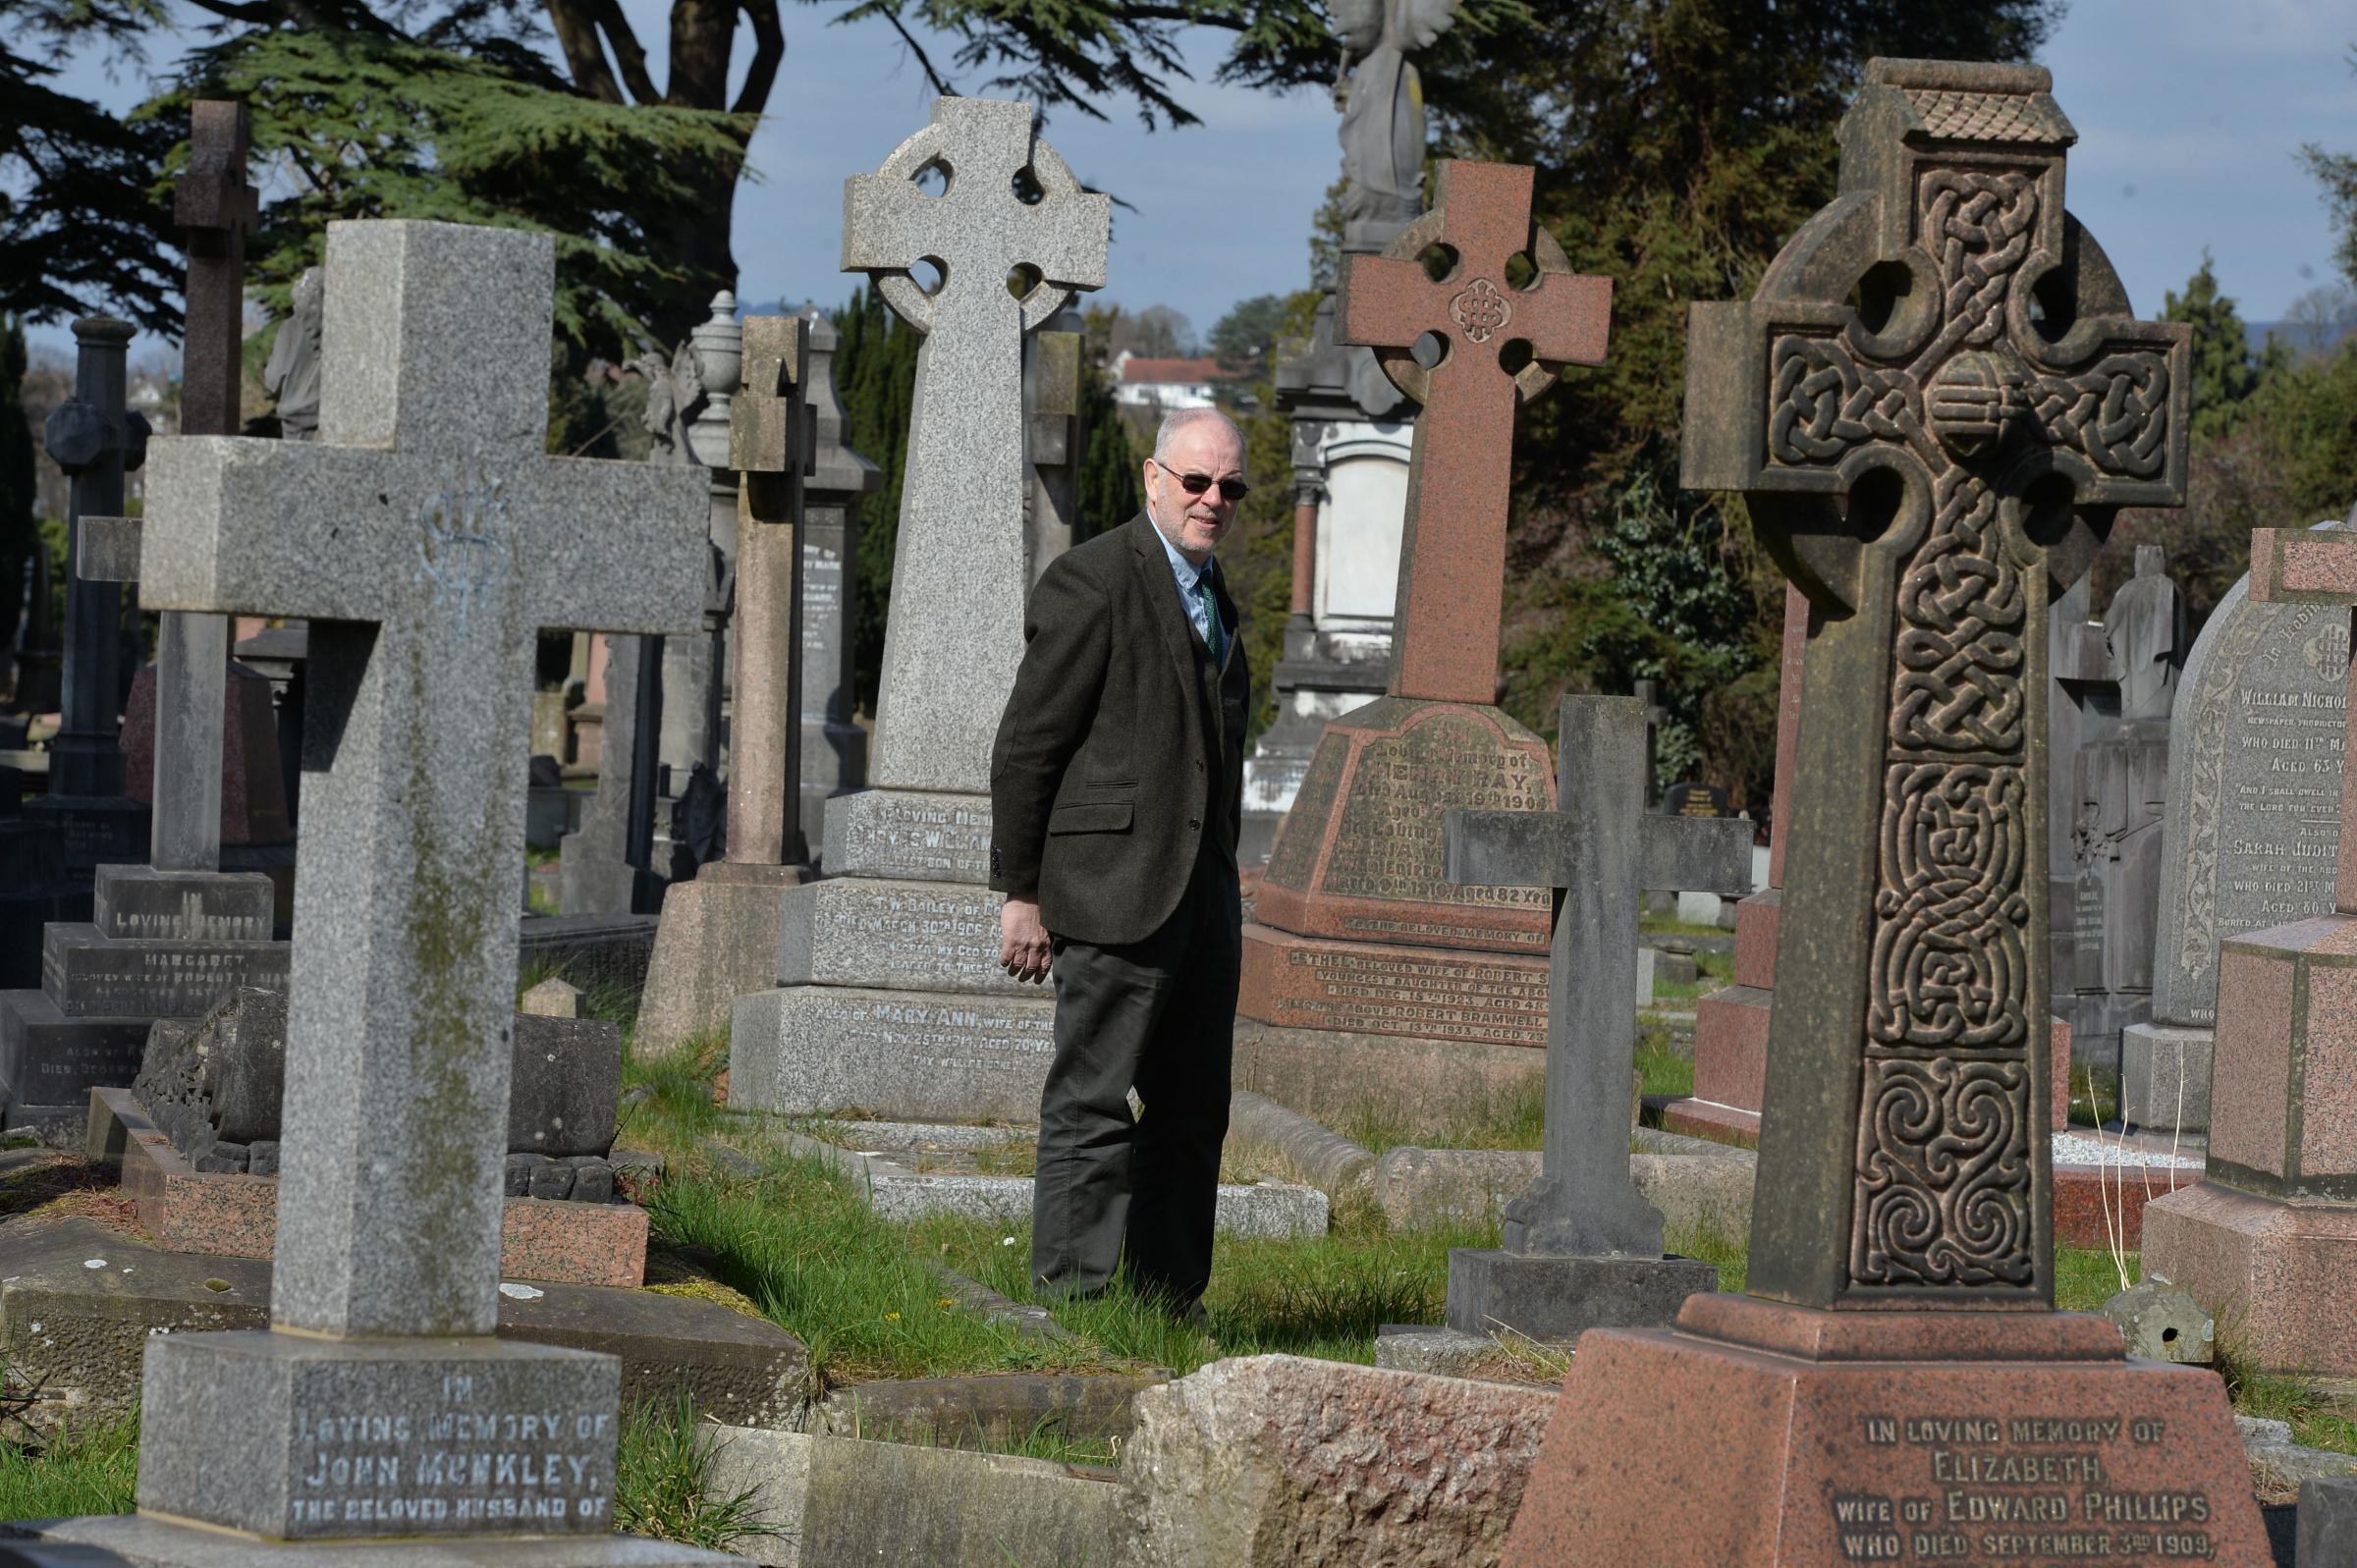 From a boy who was killed by a nerve agent to a murderer - read the fascinating stories of those buried at a historic cemetery